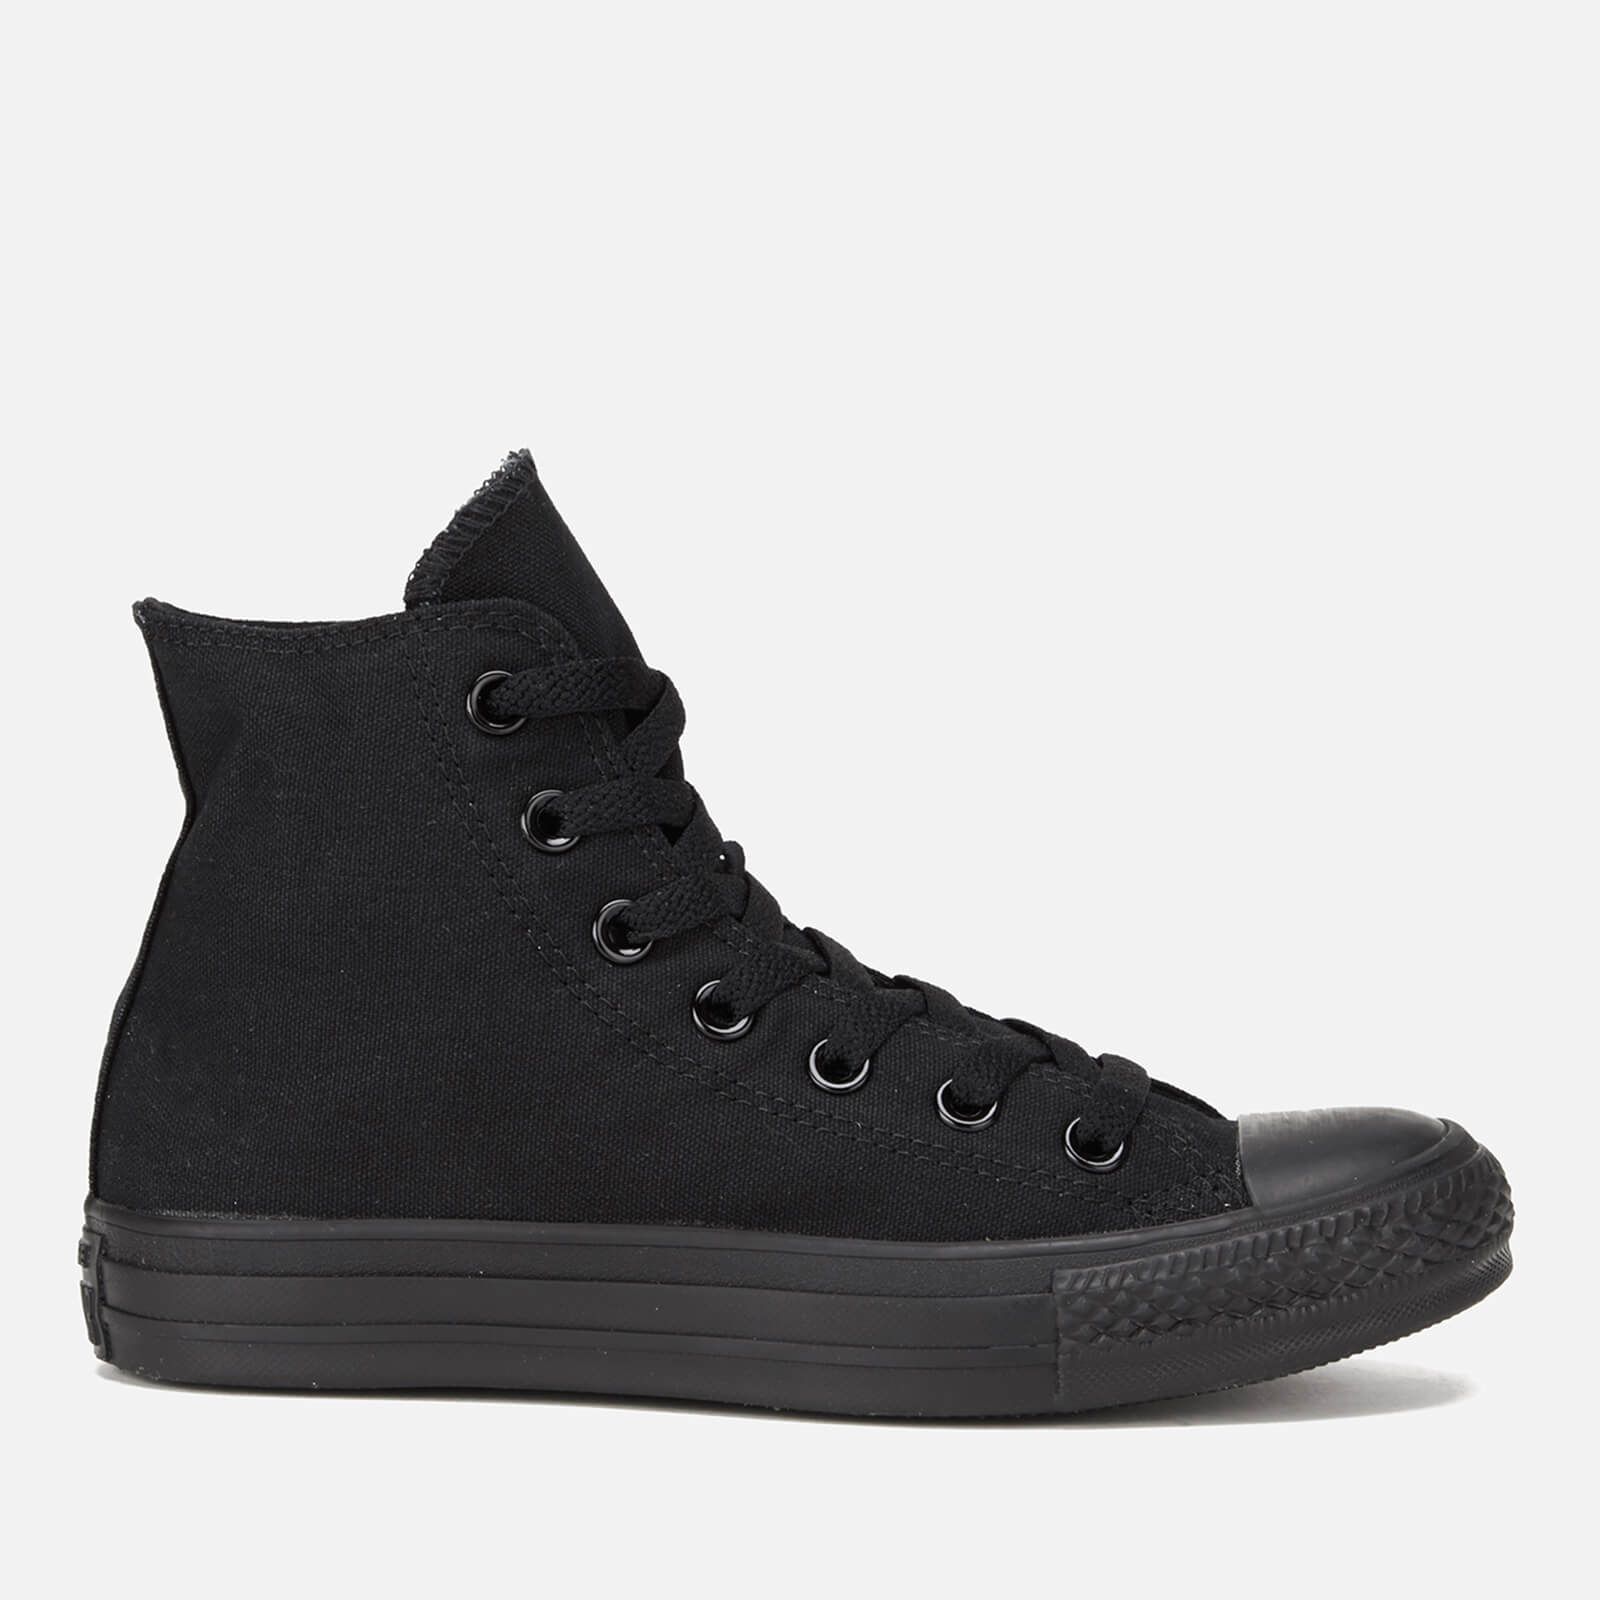 Converse All Star Canvas Hi Top Trainers Black Monochrome Uk 10